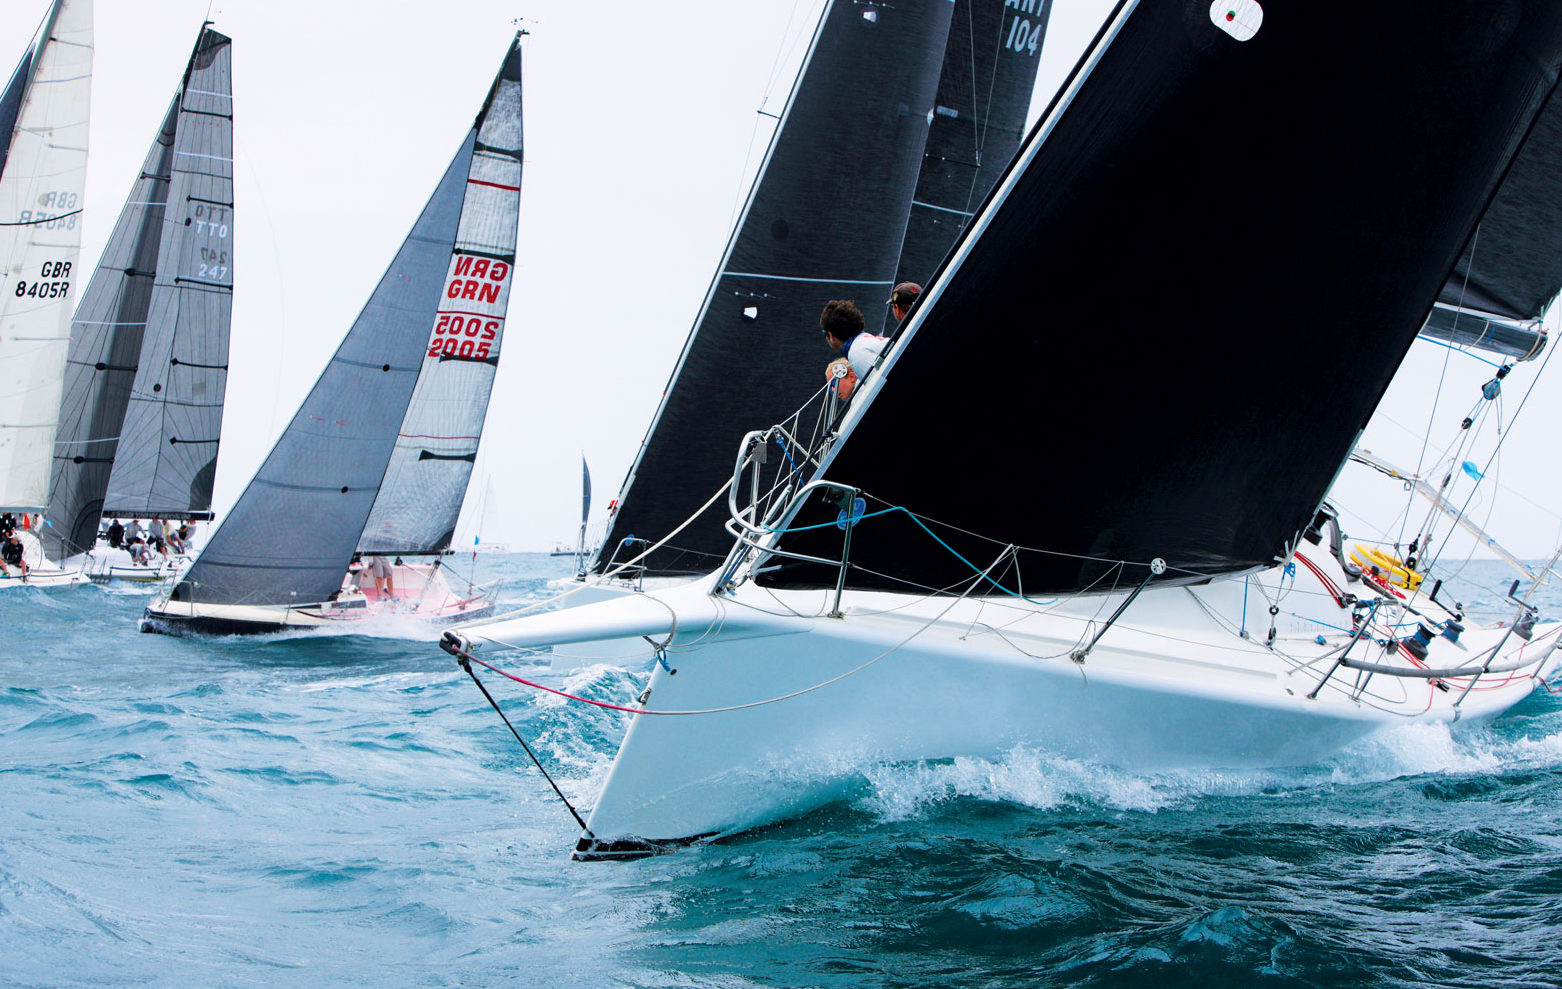 Yachts thrash to windward during Island Water World Grenada Sailing Week 2017